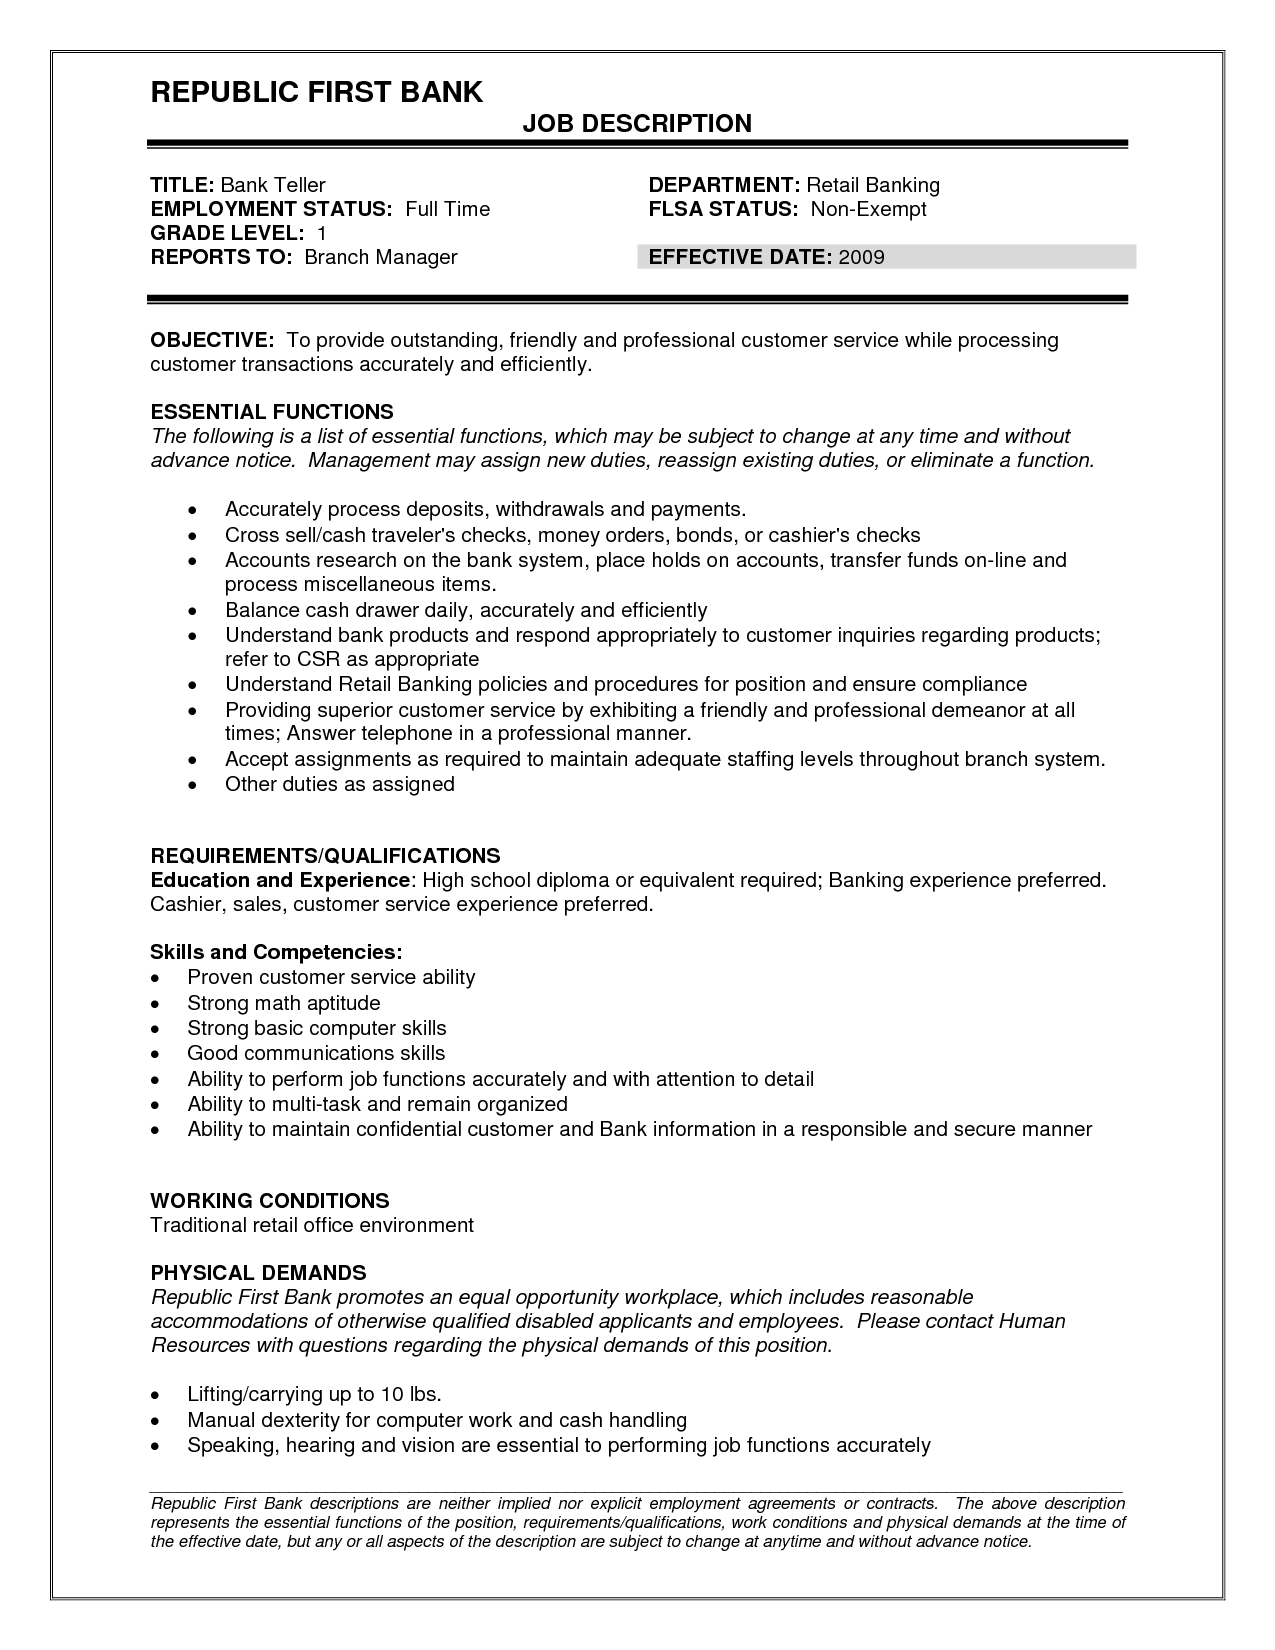 resume Teller Job Description For Resume teller description for resume school teacher format project bank job thelongwayupinfo skills of a bank